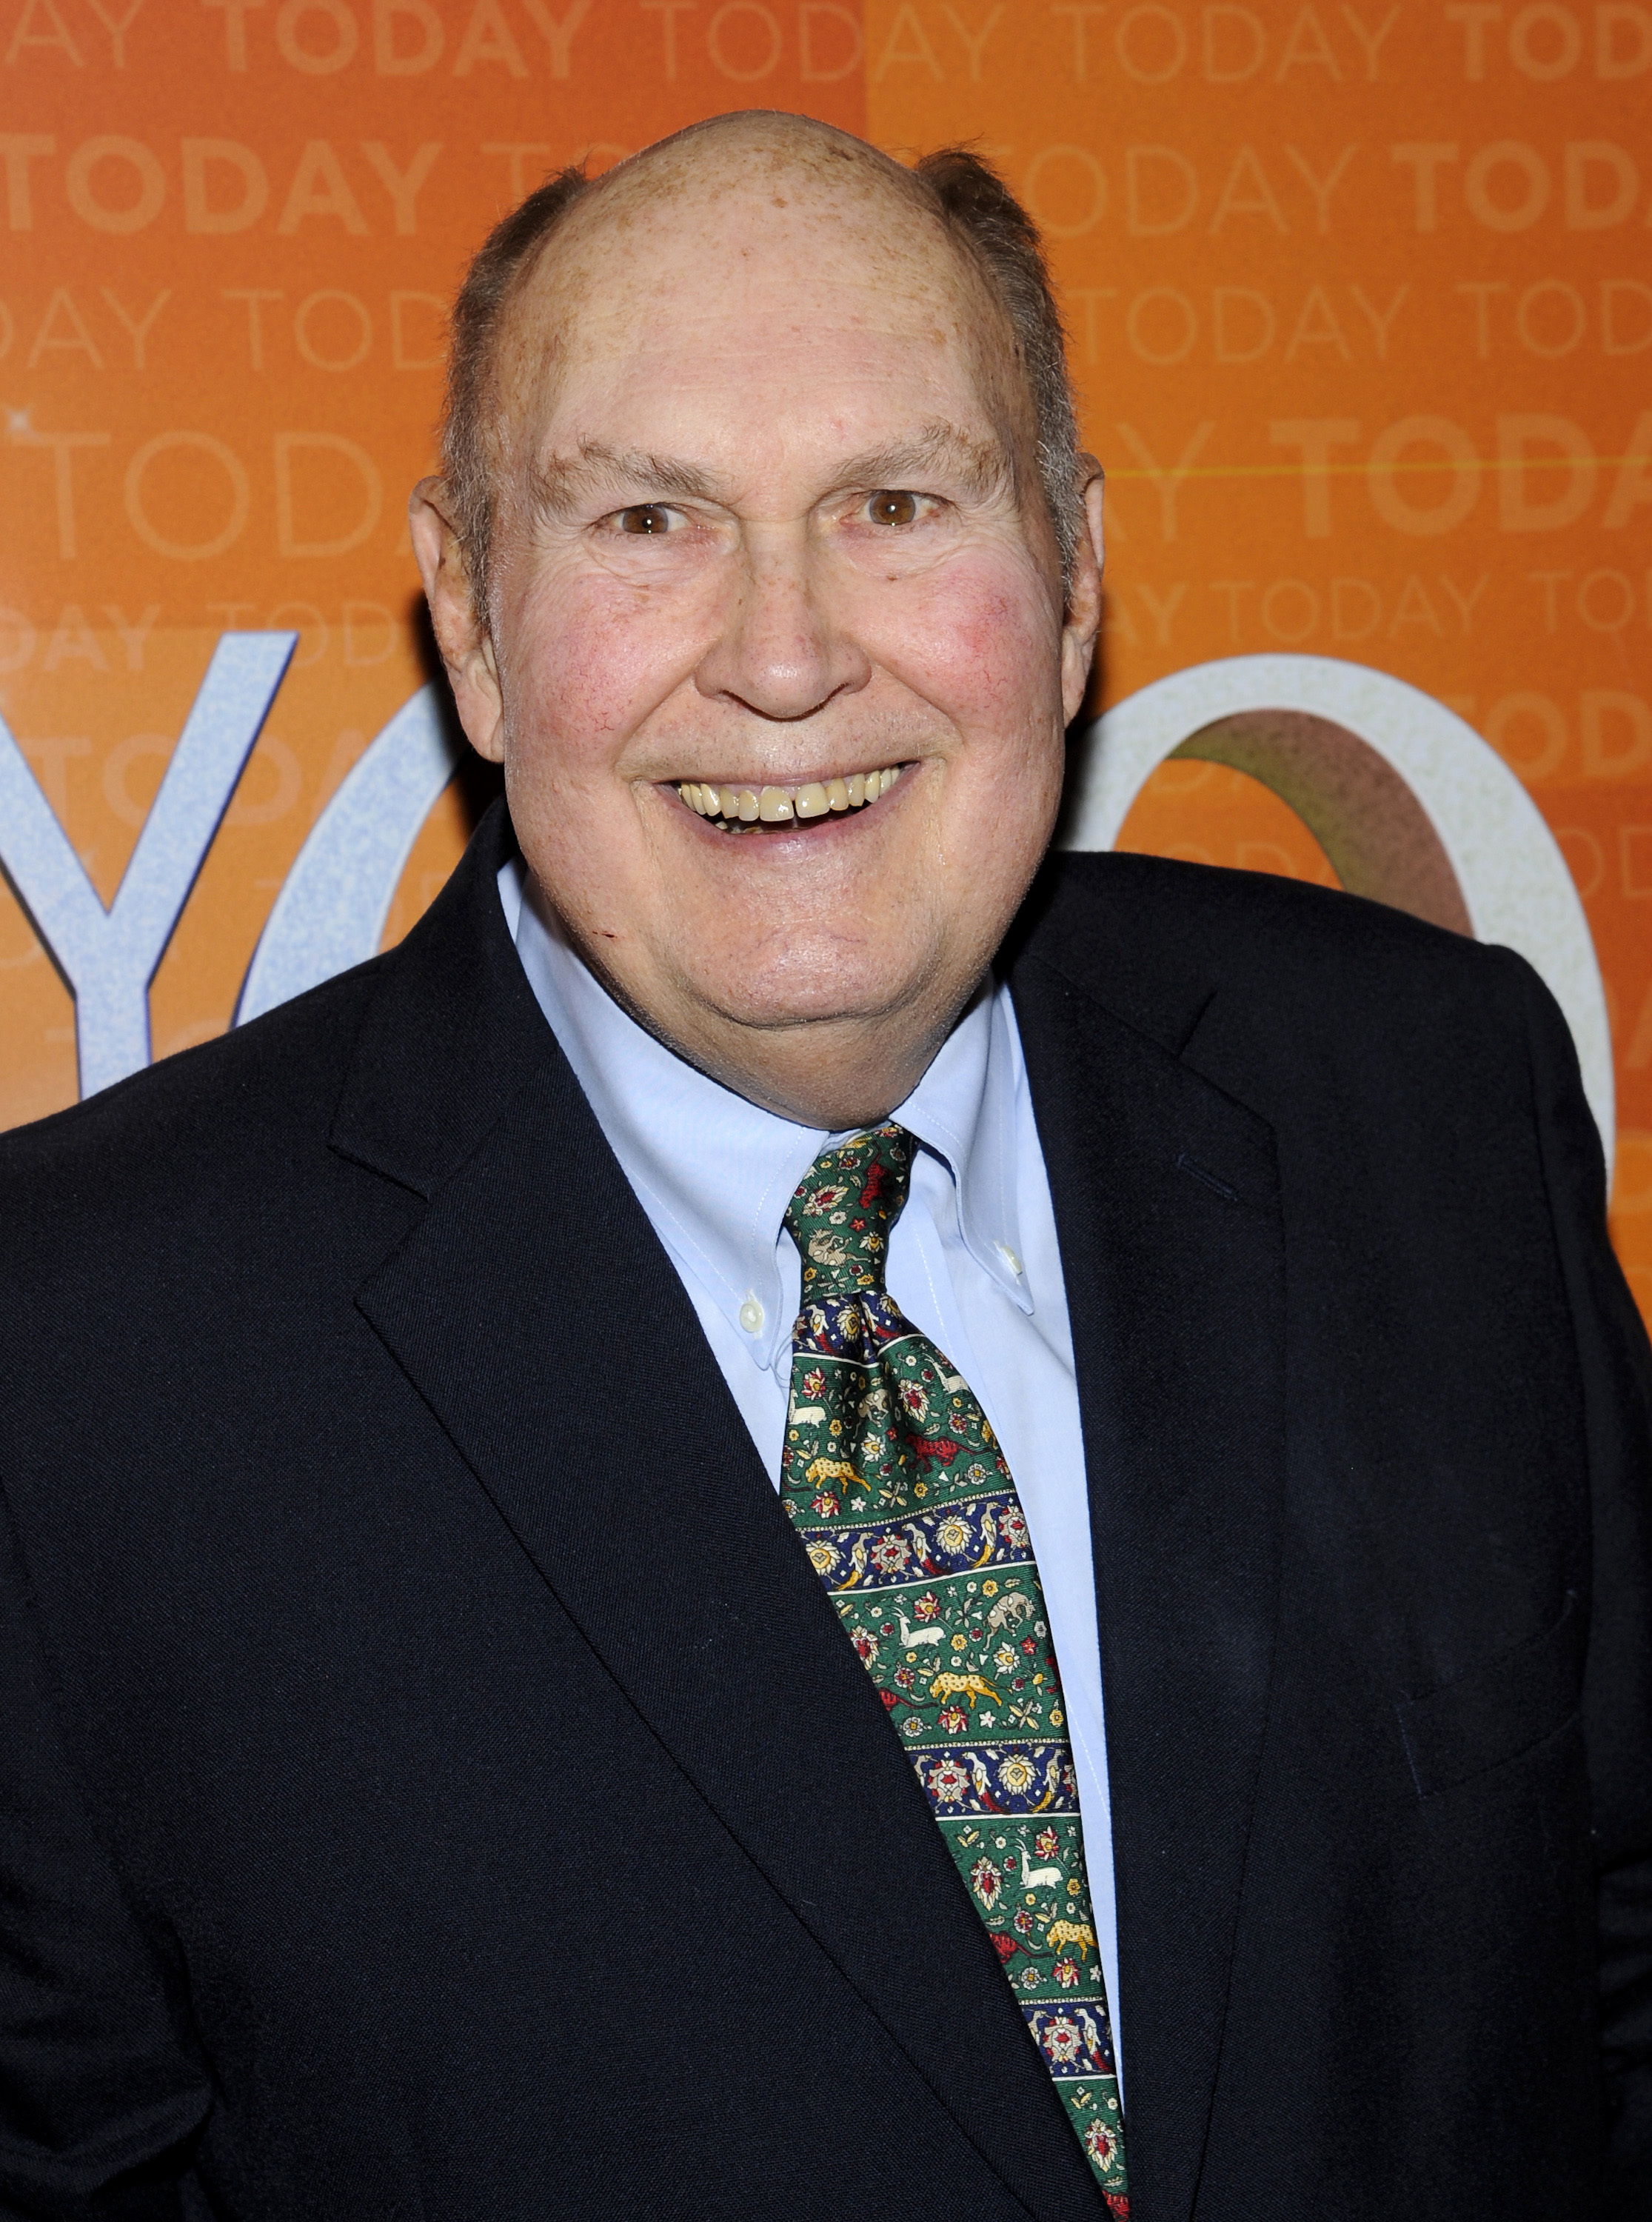 """In this 2012, file photo, former """"Today"""" show weatherman Willard Scott attends the """"Today"""" show 60th anniversary celebration at the Edison Ballroom in New York."""